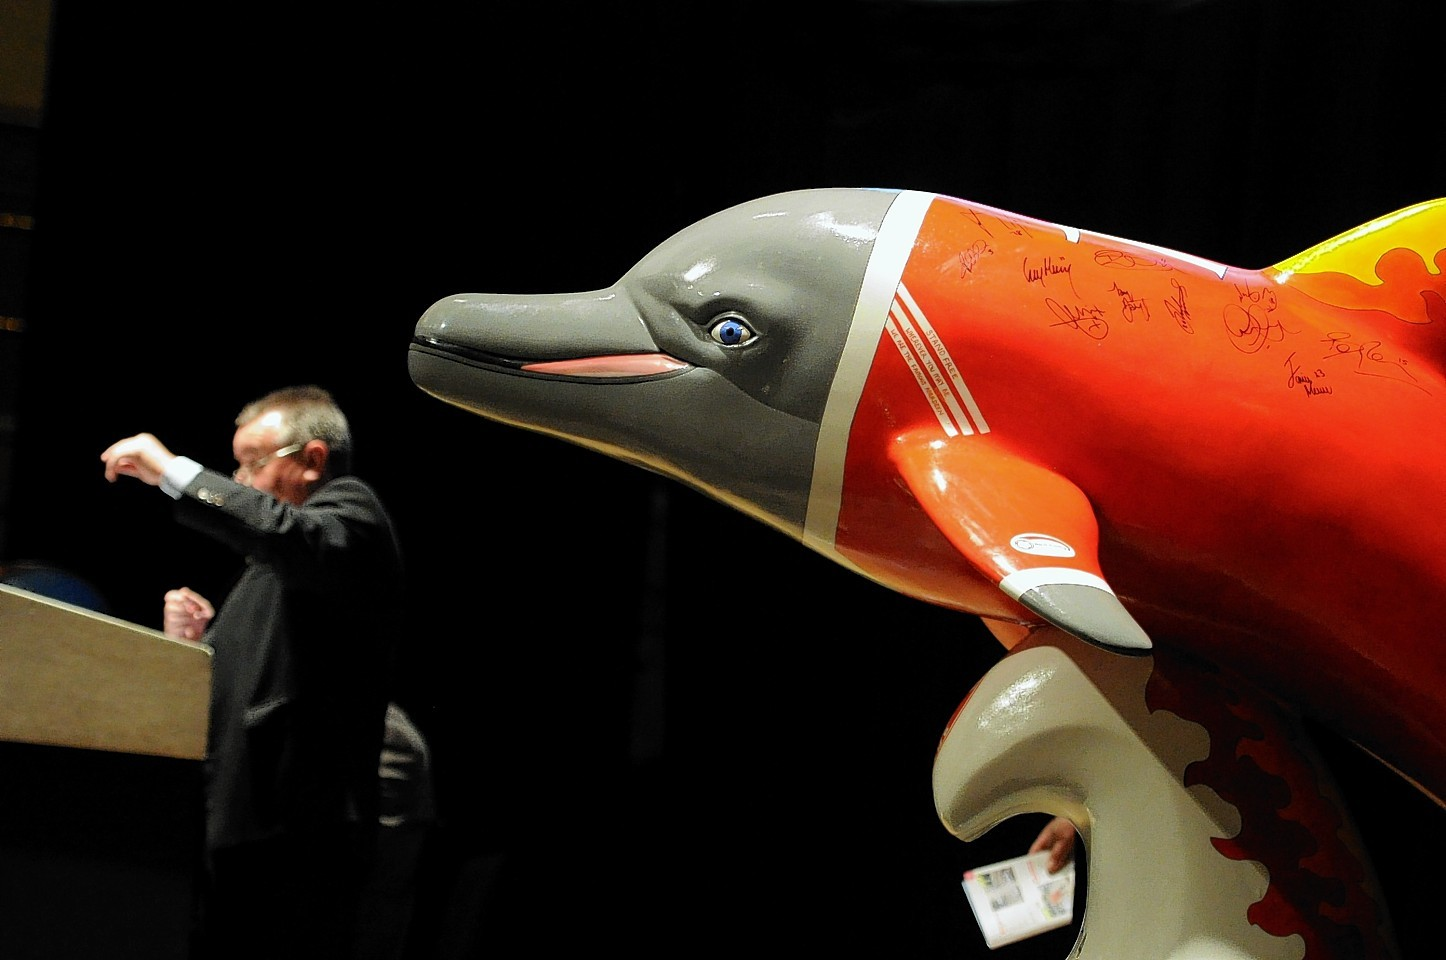 Going, going gone. Dolphin statues were up for grabs at this recent charity auction in Aberdeen